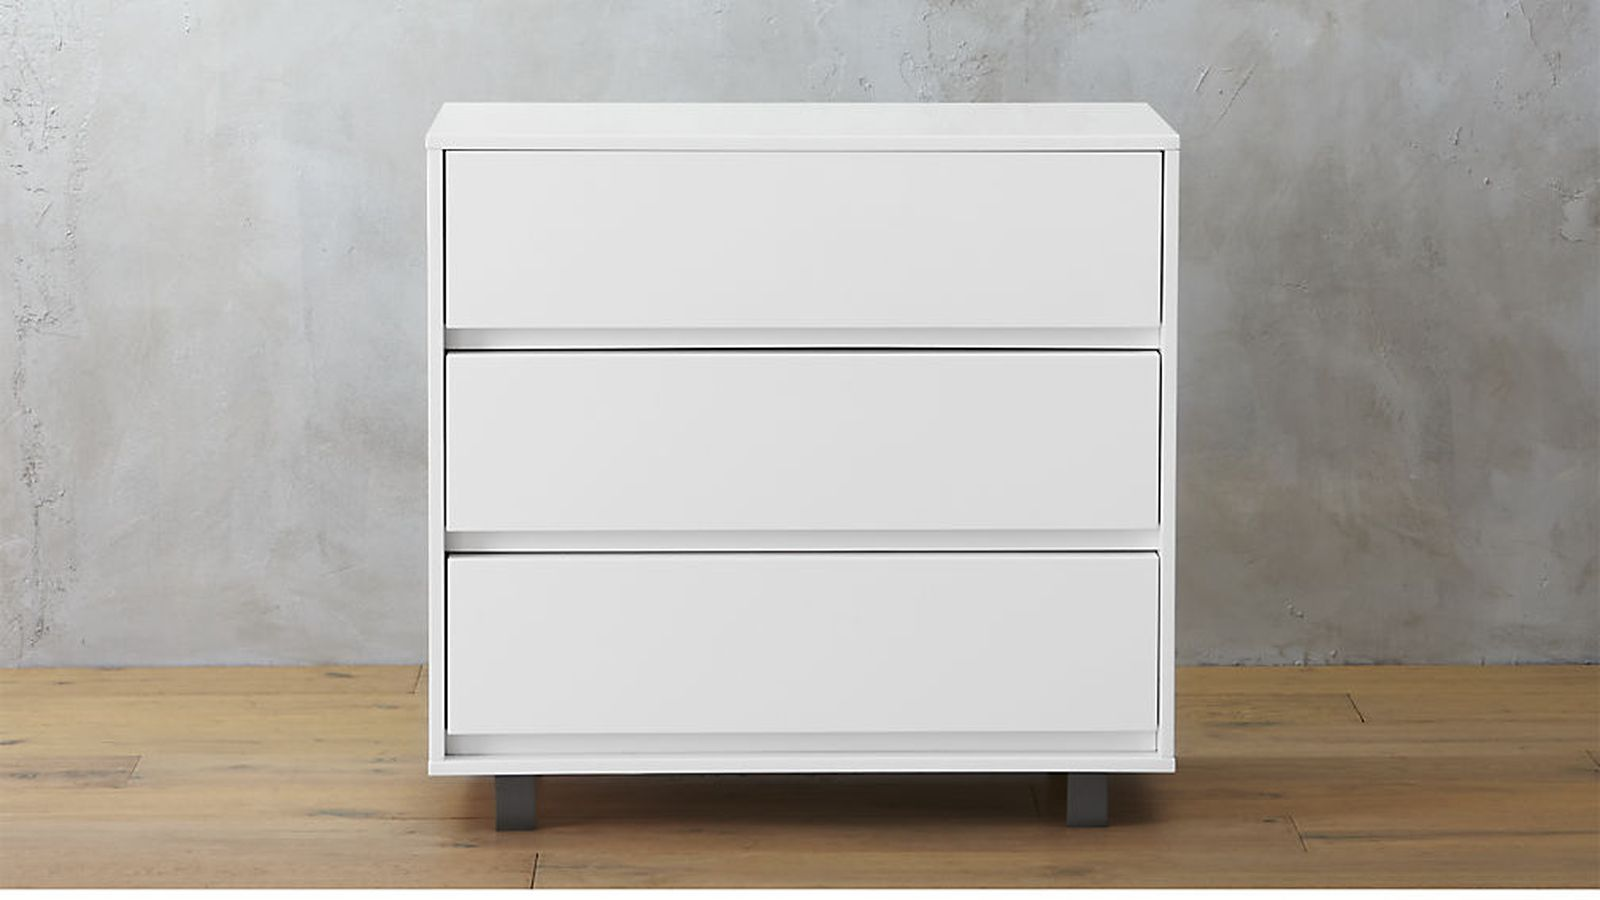 Best Types of Dressers ( With Pictures ) | Decor Or Design on antique furniture, frosted glass drawer dressers, dimensions of dressers, sizes of dressers, names of dressers, simple dressers, colors of dressers, glass handles for dressers, cabriole leg, parts of dressers, bedroom furniture,